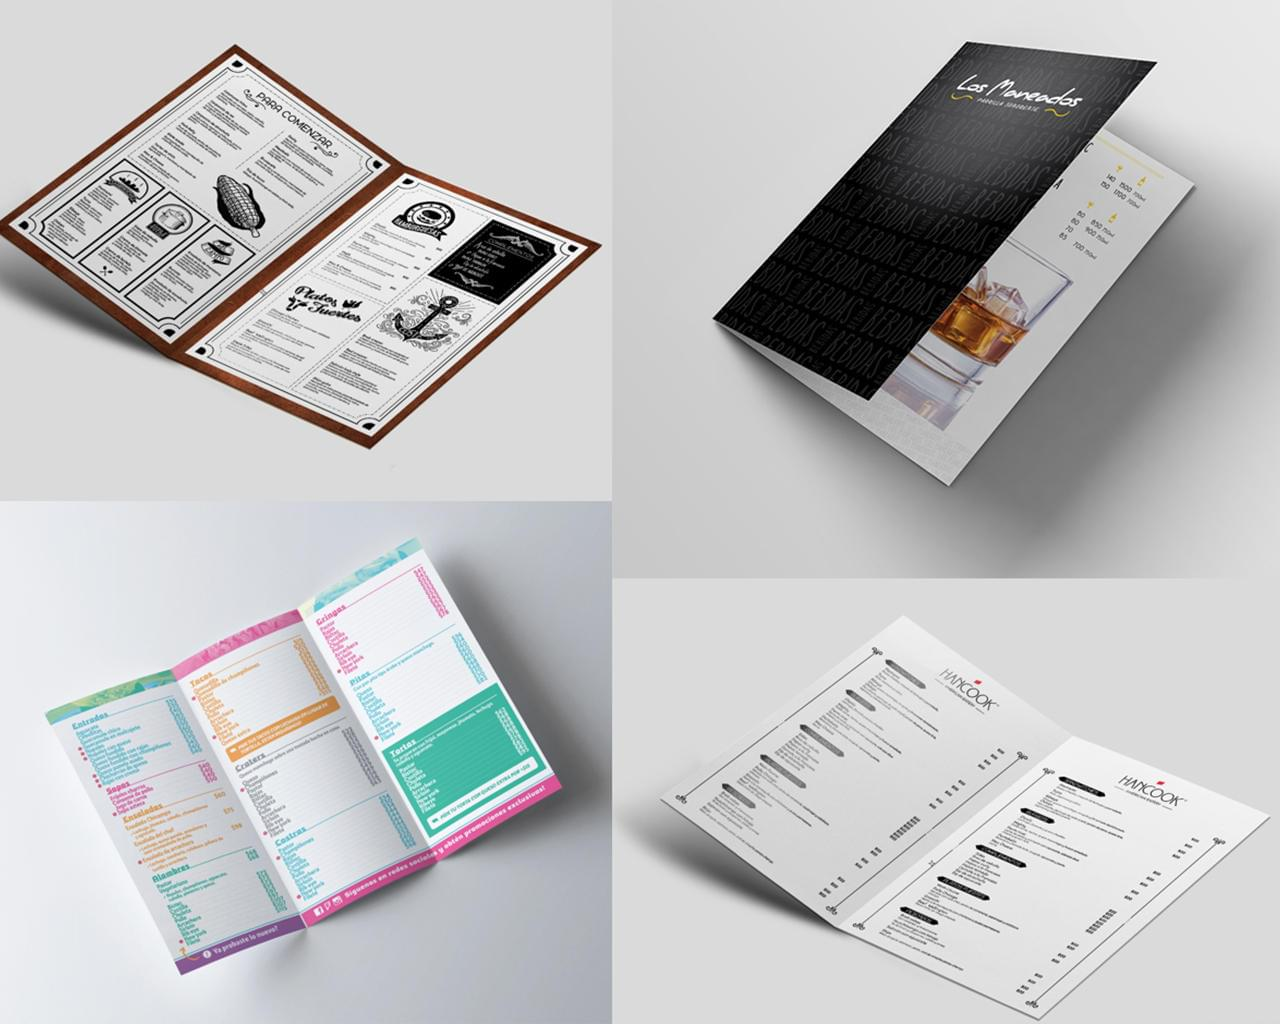 Exclusive Restaurant Menu Design by ExcelloBranding - 115243